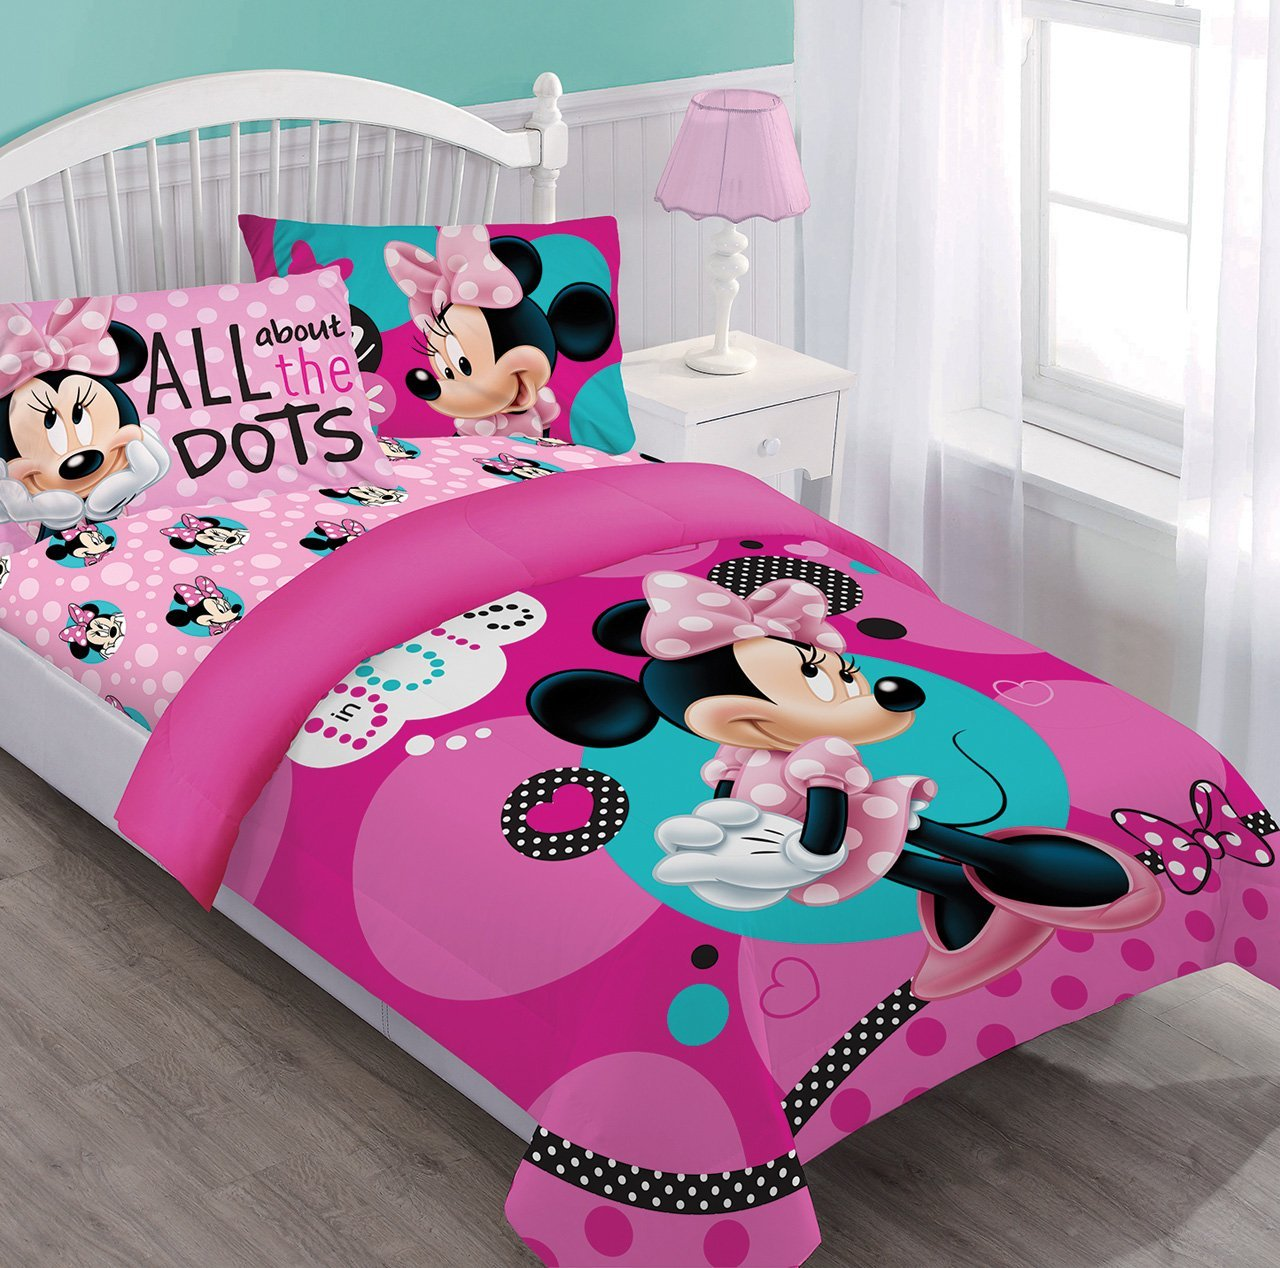 amazoncom disney minnie dreaming in dots twin comforter set wfitted sheet home kitchen - Minnie Mouse Bed Set